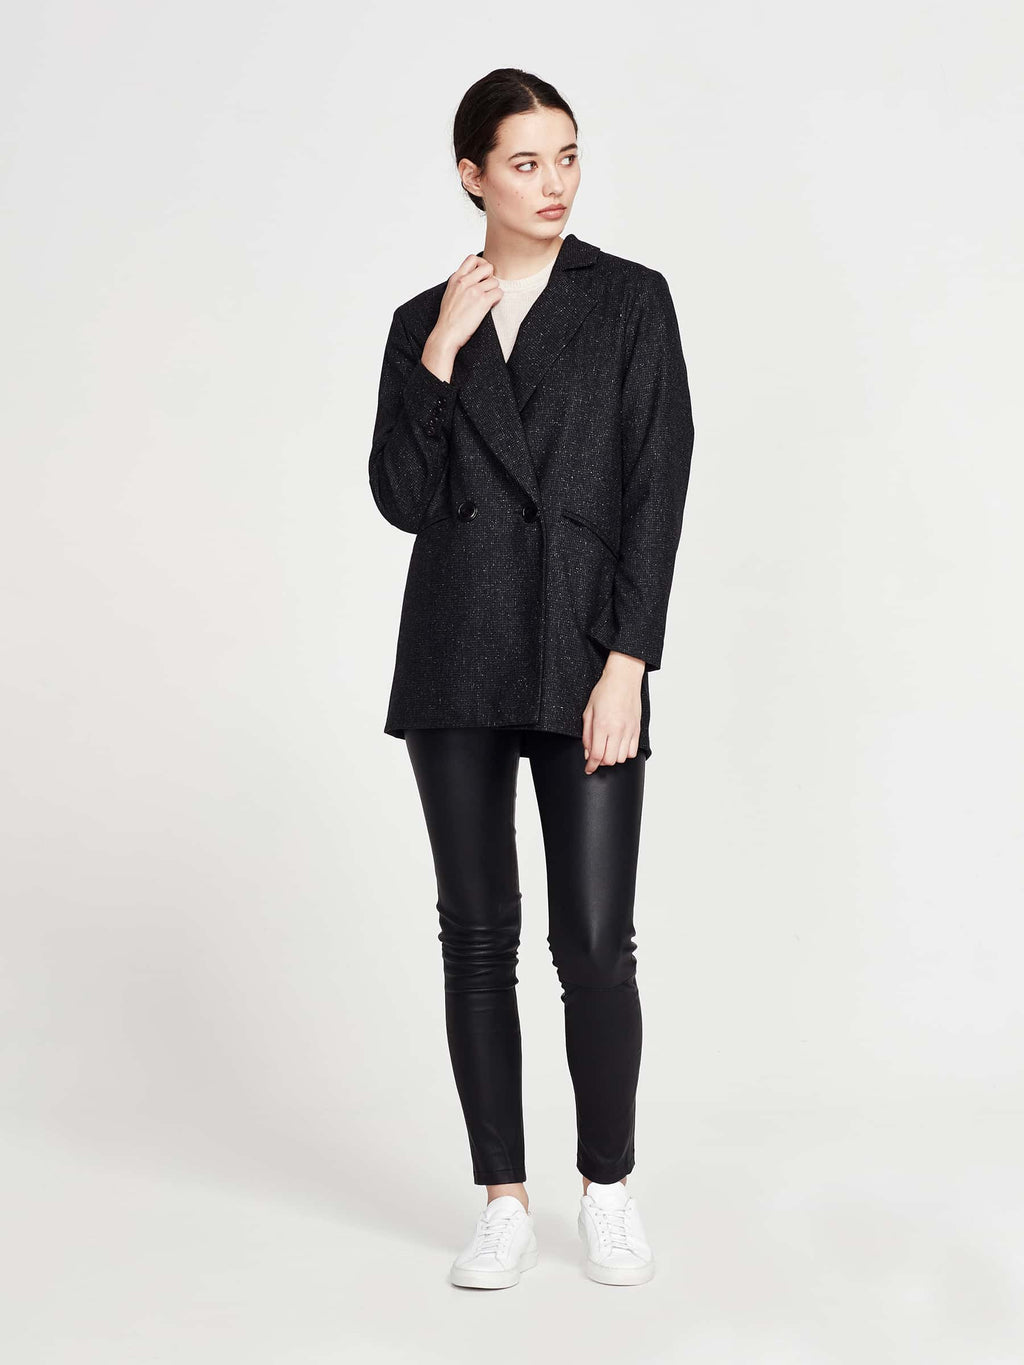 9623d6553cf Keats Jacket (Silk Tweed) Speckle – Juliette Hogan